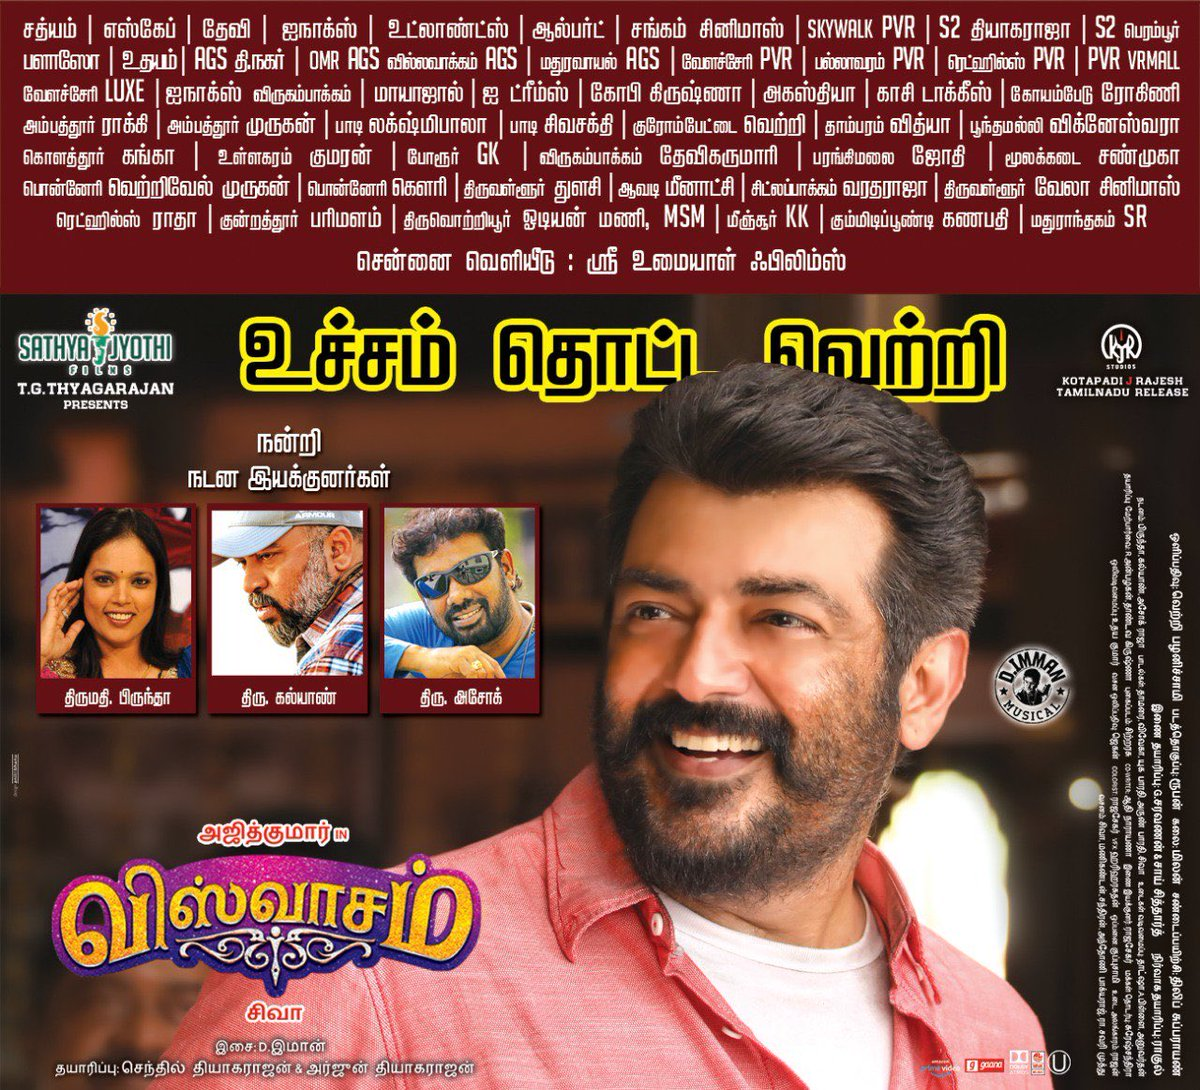 Today paper add .. #viswasam is the topper of TN box office .. cheers #HistoricalBlockBusterviswasam #ATBBviswasam <br>http://pic.twitter.com/Pem9R0VOns